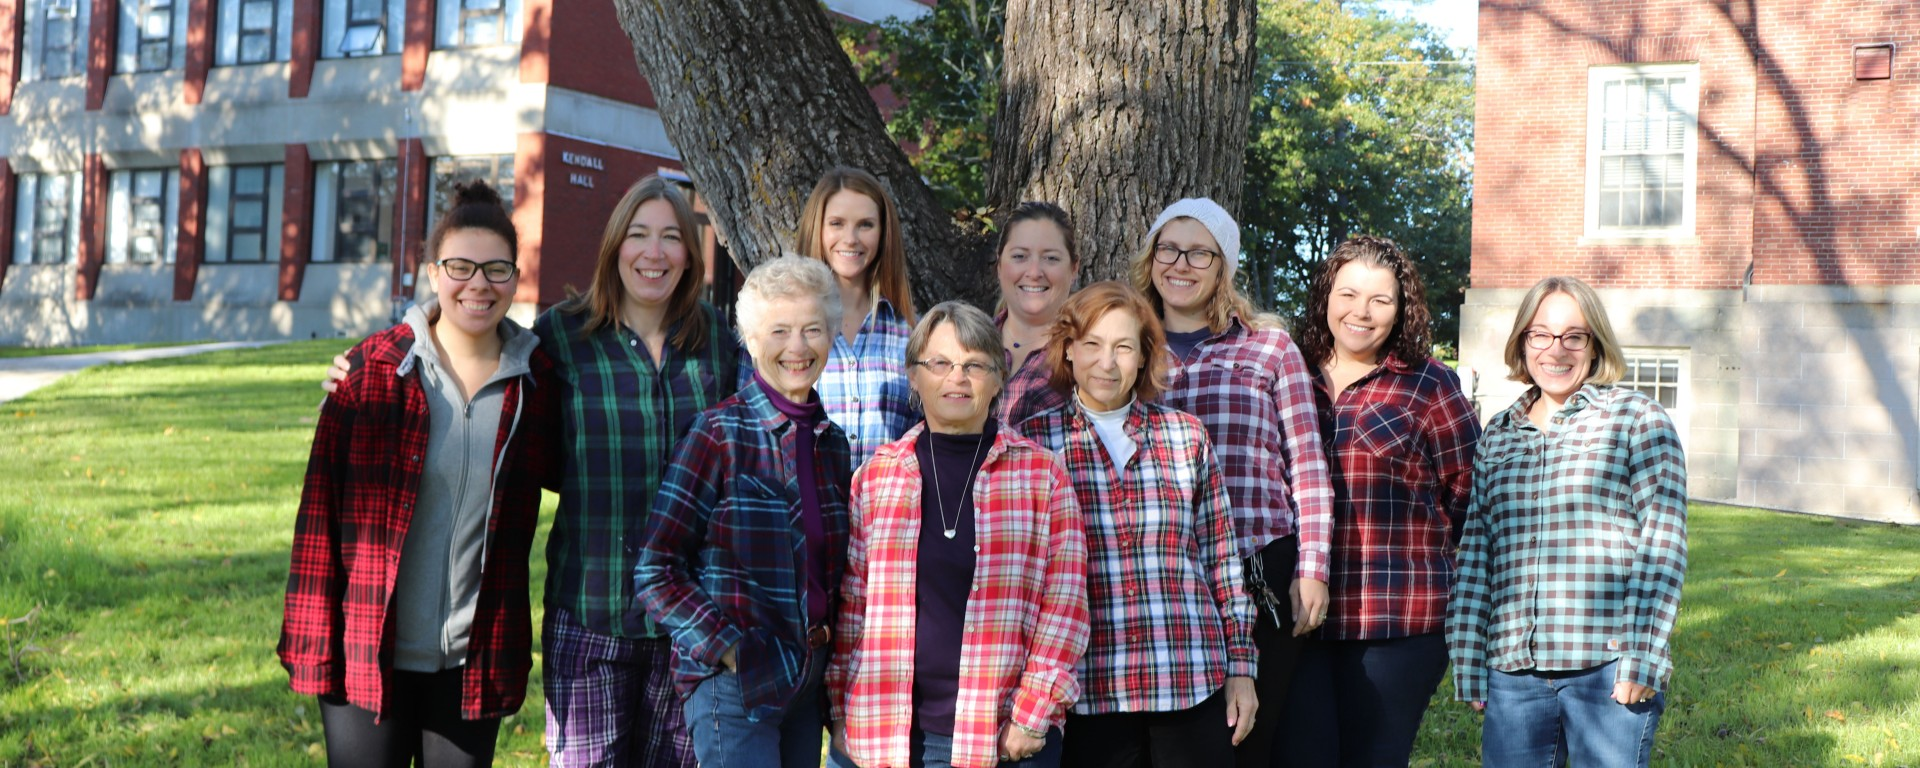 Flannel-Day